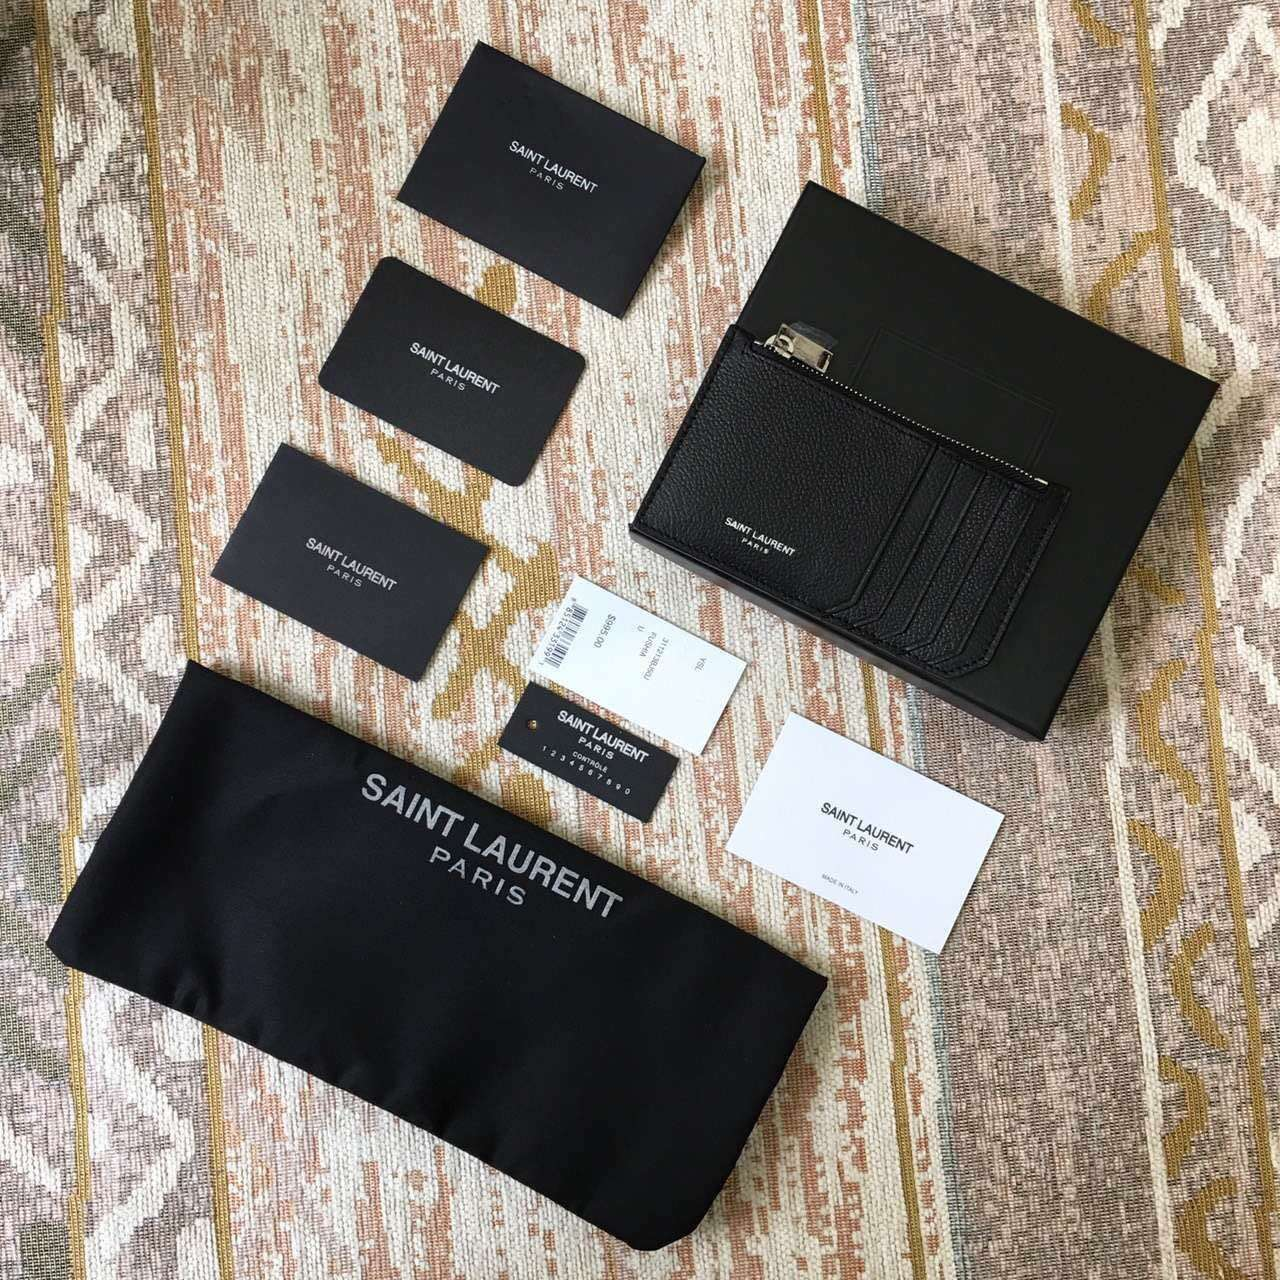 Limited Edition!2016 New Saint Laurent Small Leather Goods Cheap Sale-Saint Laurent Classic Paris 5 Fragments Zip Pouch in Black Leather